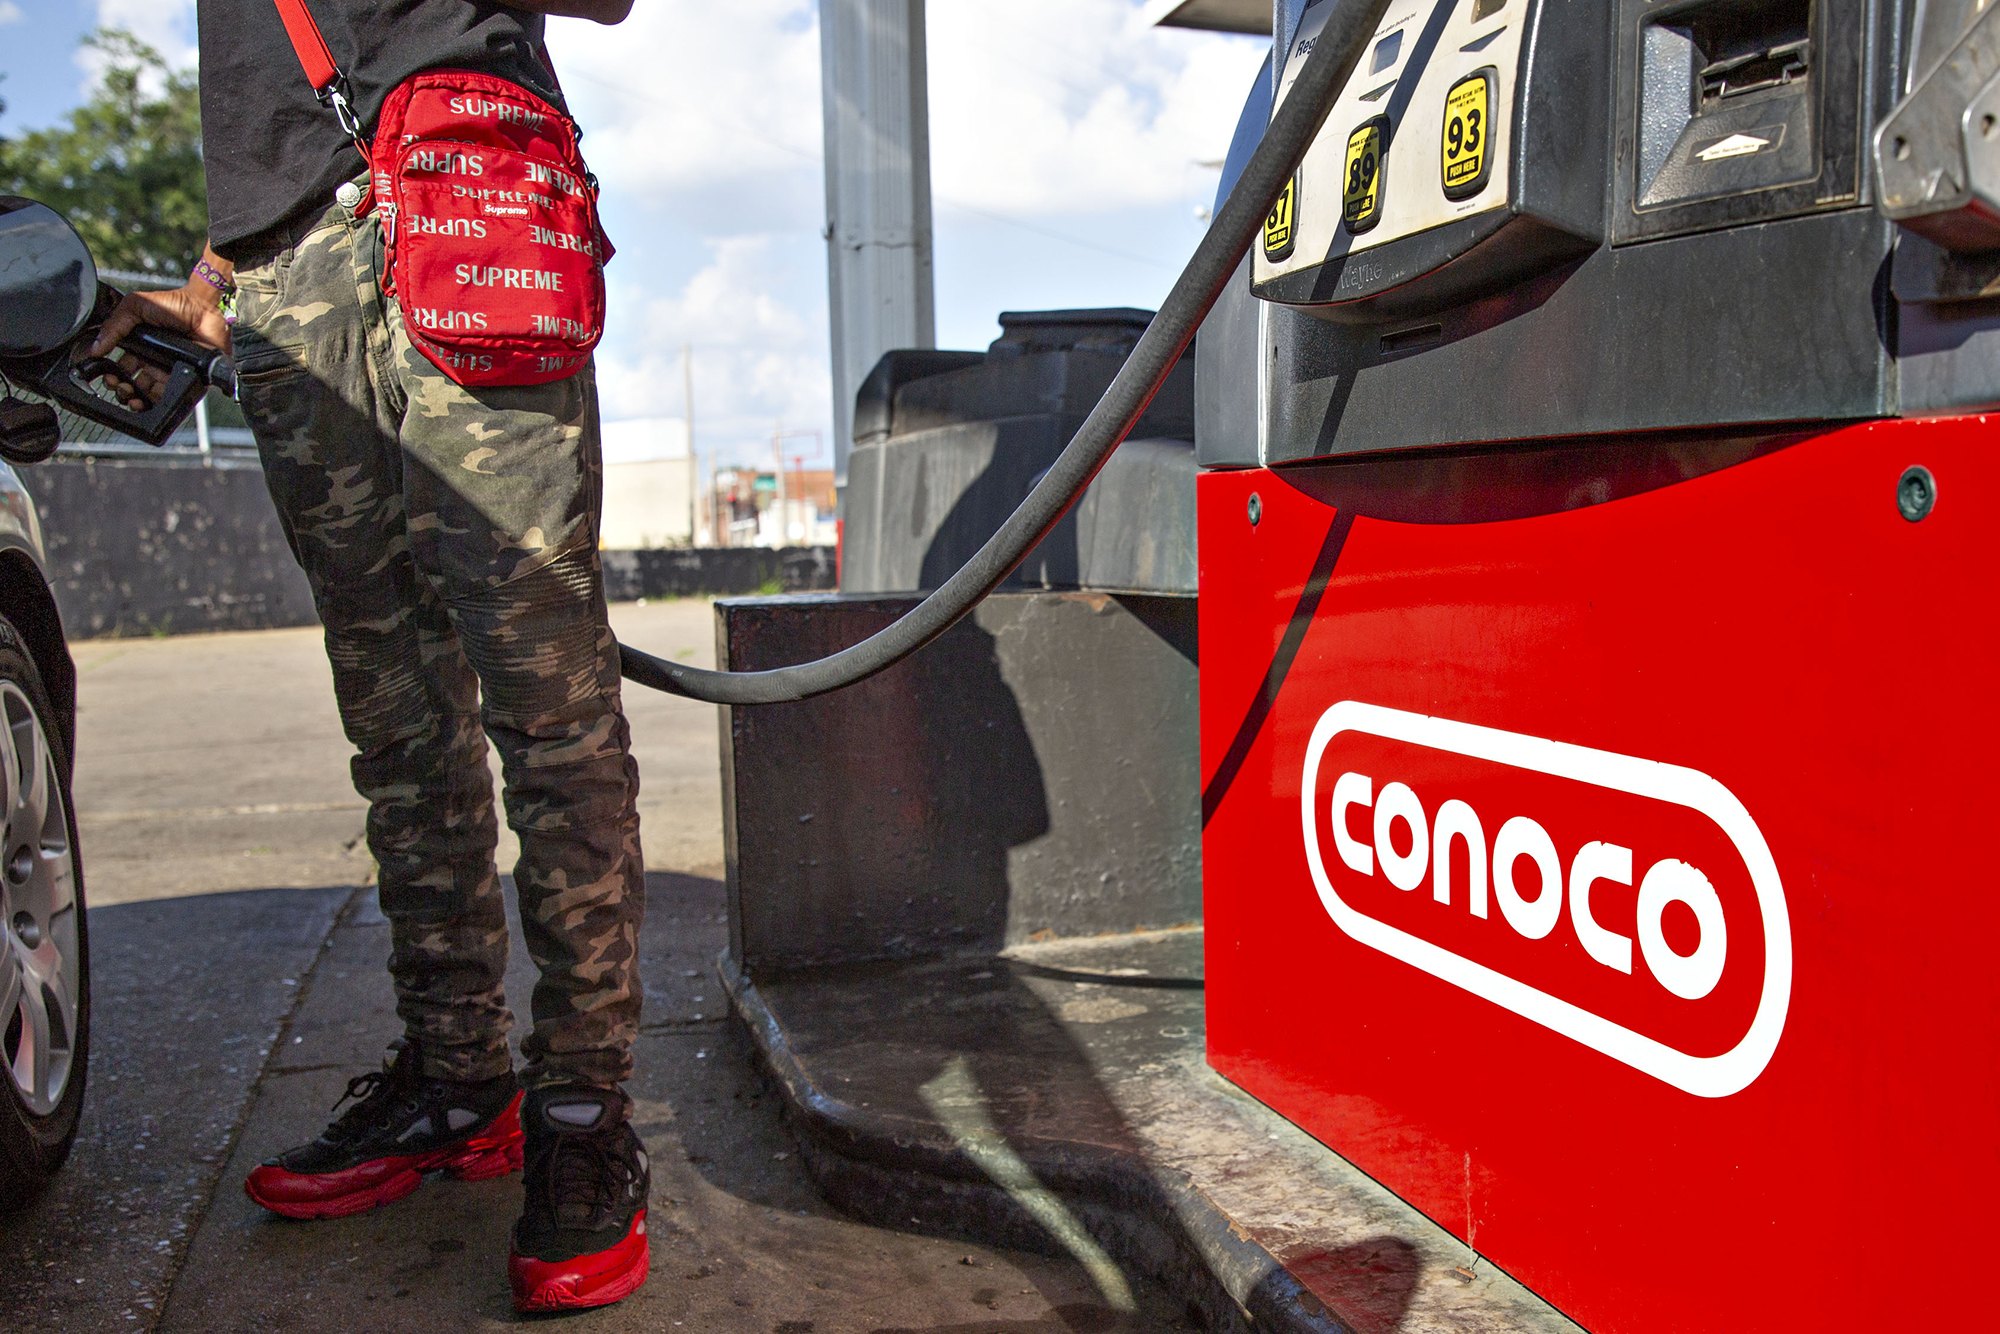 The oil industry is in crisis. ConocoPhillips is doubling down